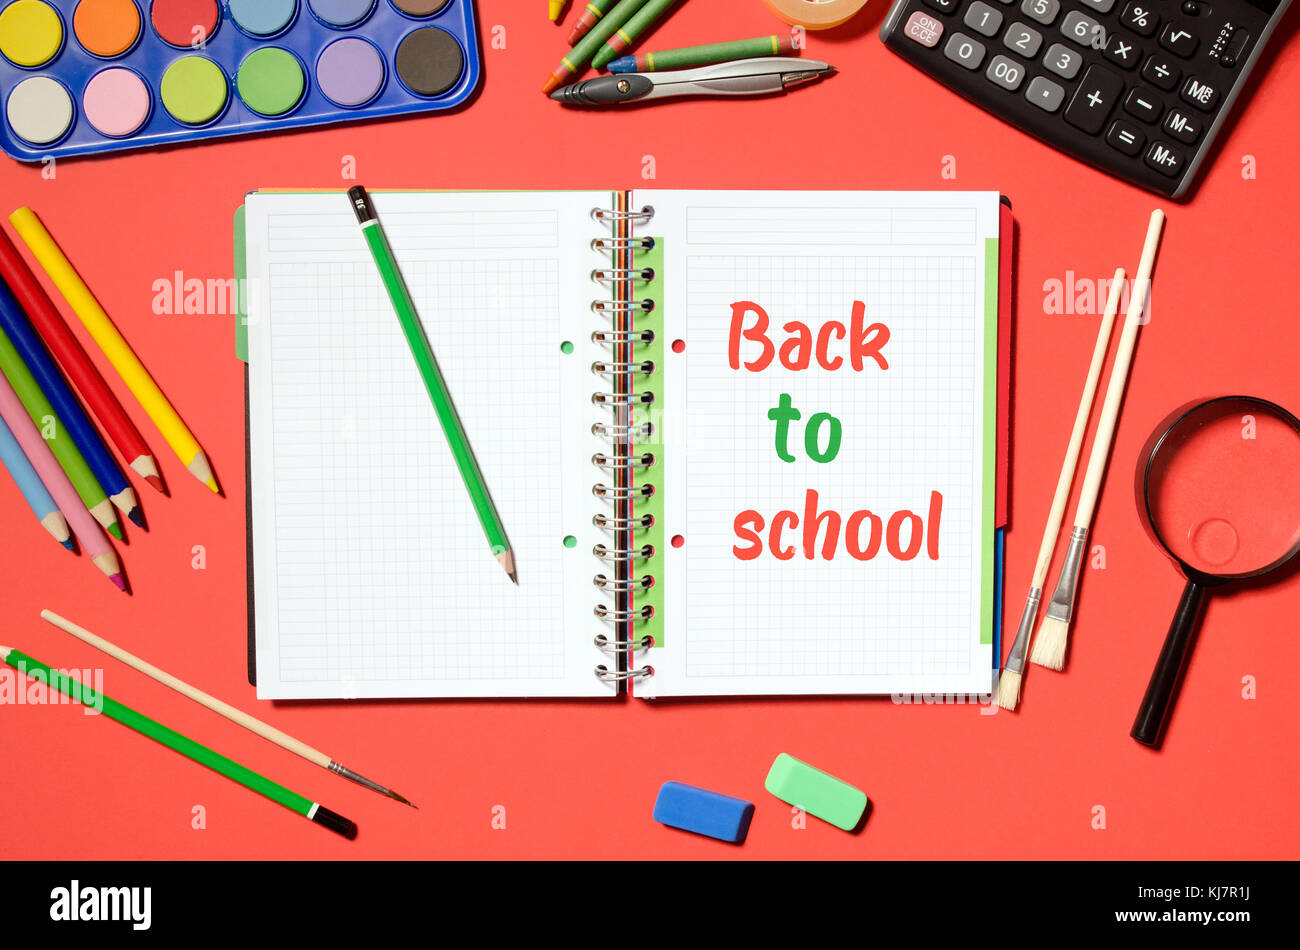 Notepad with back to school words and office stationery, red background.  stationery office desk top view table - Stock Image